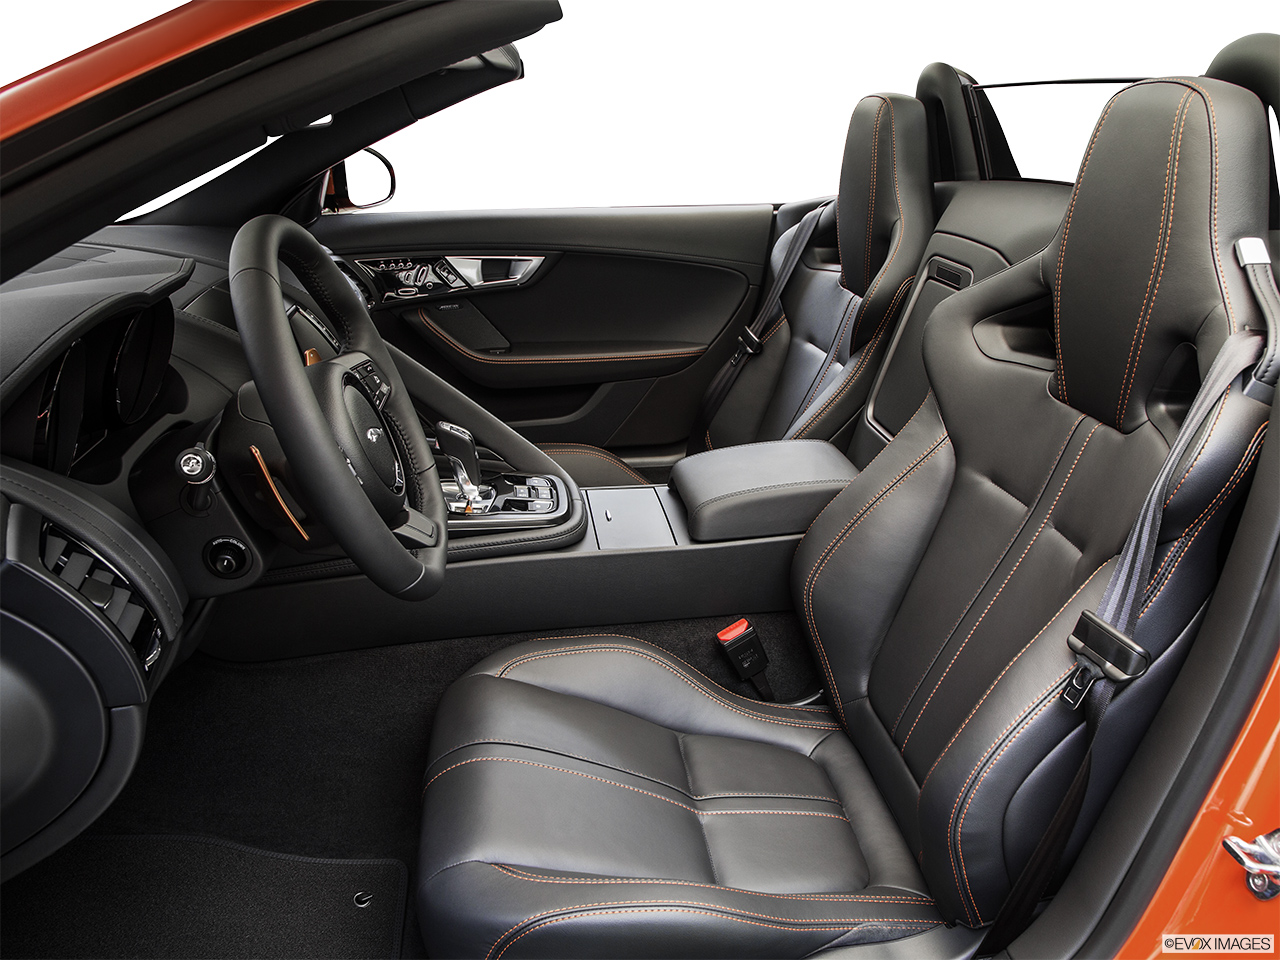 2015 Jaguar F-Type Convertible V8 S Front seats from Drivers Side.